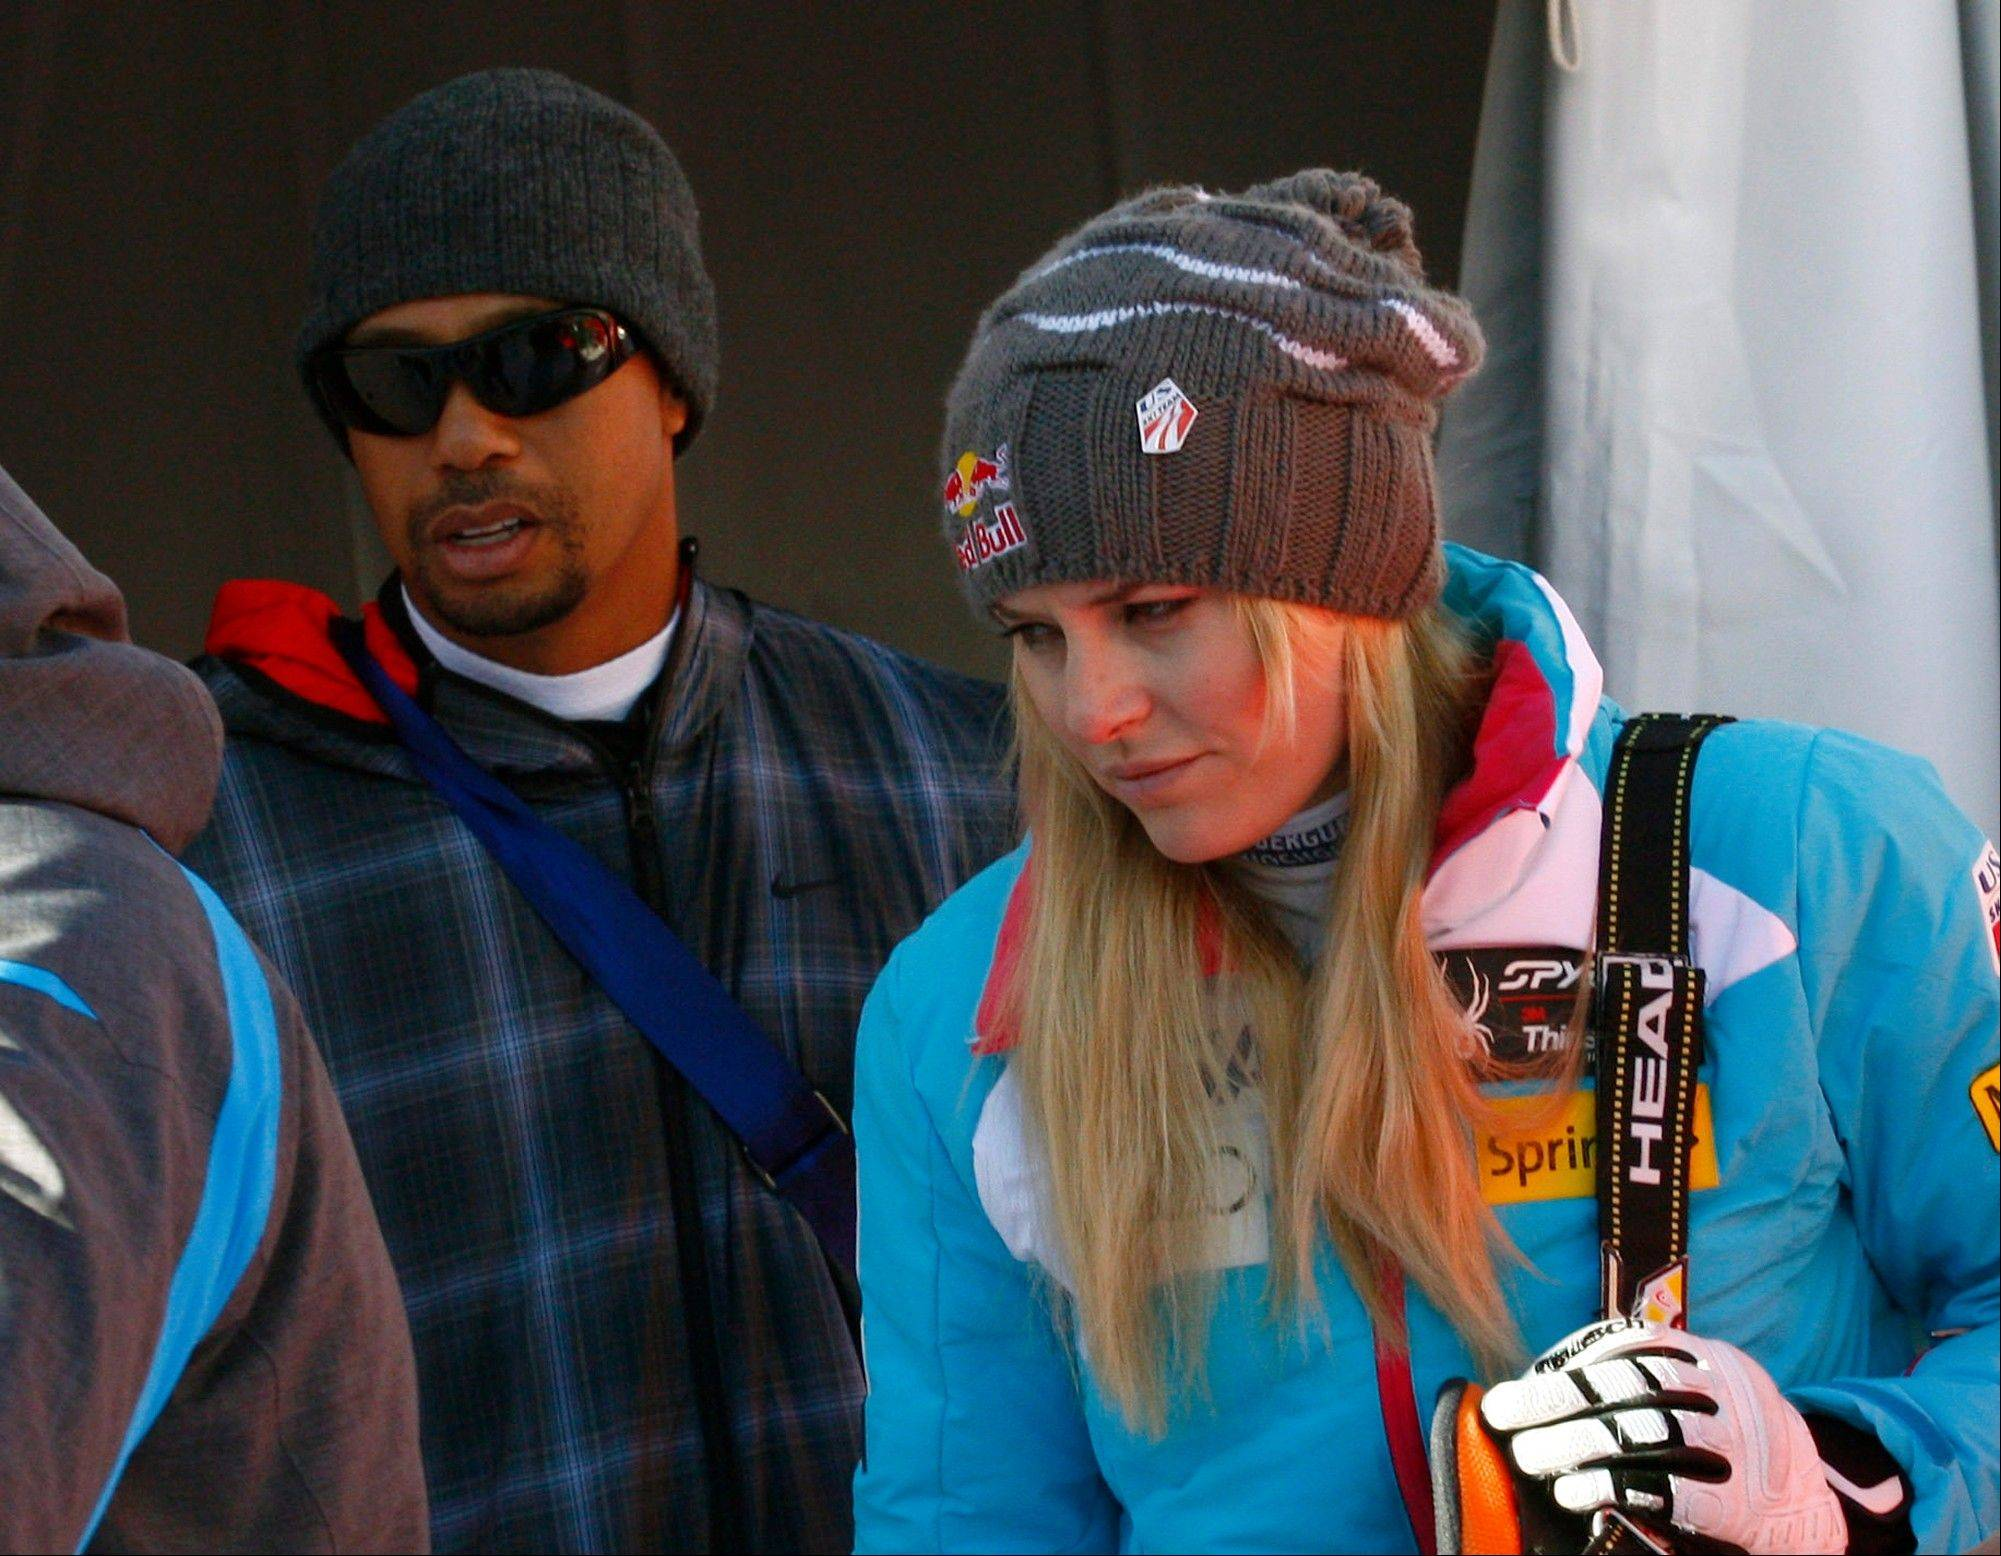 Lindsey Vonn is flanked by her boyfriend Tiger Woods as she leaves after an alpine ski, women's World Cup downhill, in Val D'Isere, France, Saturday, Dec. 21, 2013. Lindsey Vonn is confident that her latest knee trouble will not stop her from competing at the Sochi Games in February. With boyfriend Tiger Woods watching from the bottom of the slope, Vonn missed a gate in Saturday's World Cup downhill at Val d'Isere as her troublesome right knee buckled under her and gave way. The American was clearly distressed after skiing off course and looked close to tears. She didn't fall but grimaced as she pulled up, clutching her knee.